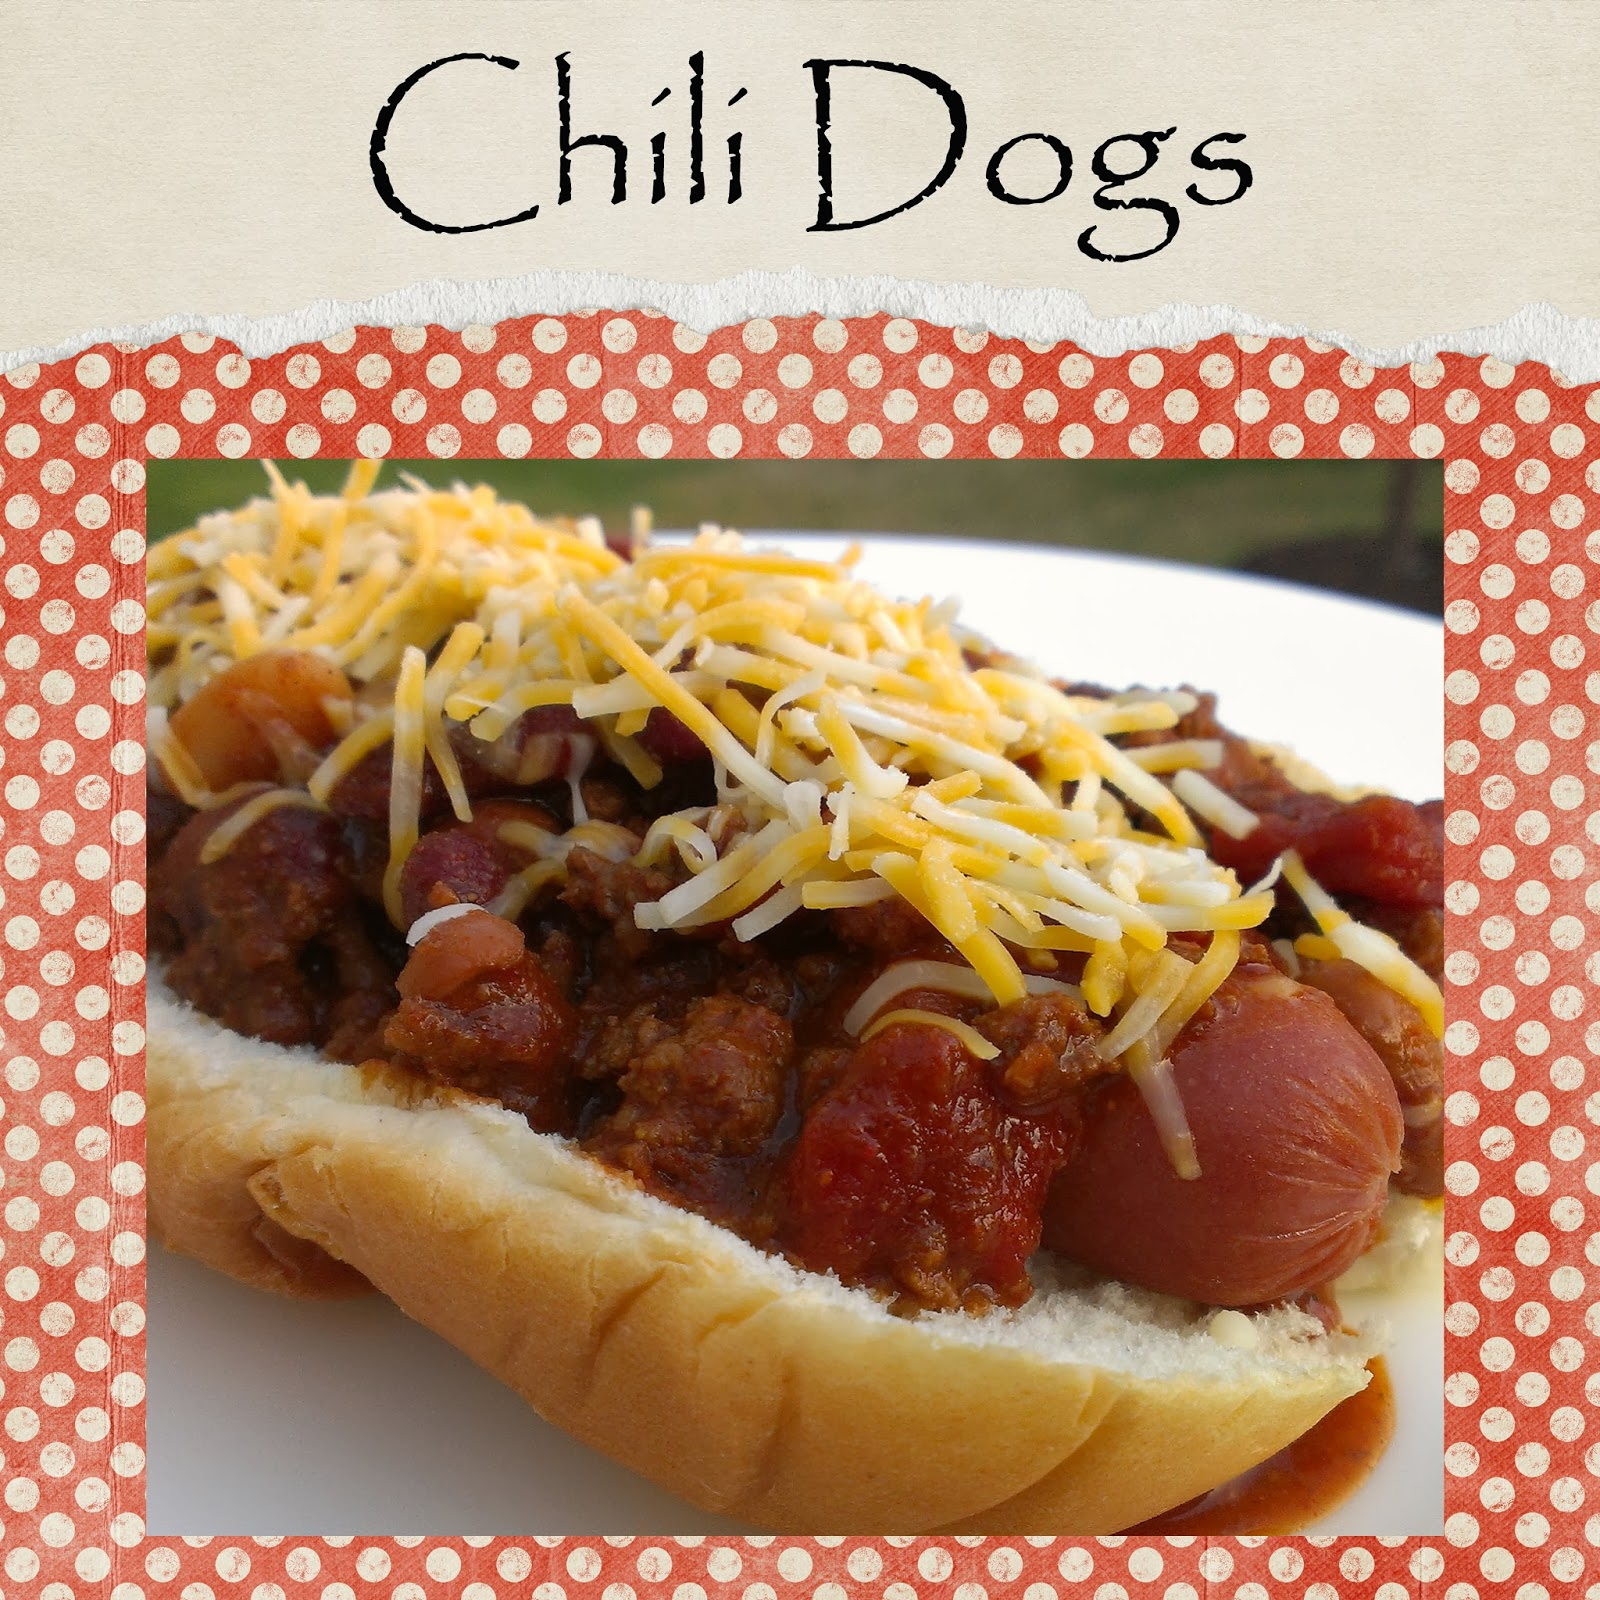 http://gloriouslymade.blogspot.com/2013/11/chili-dogs.html